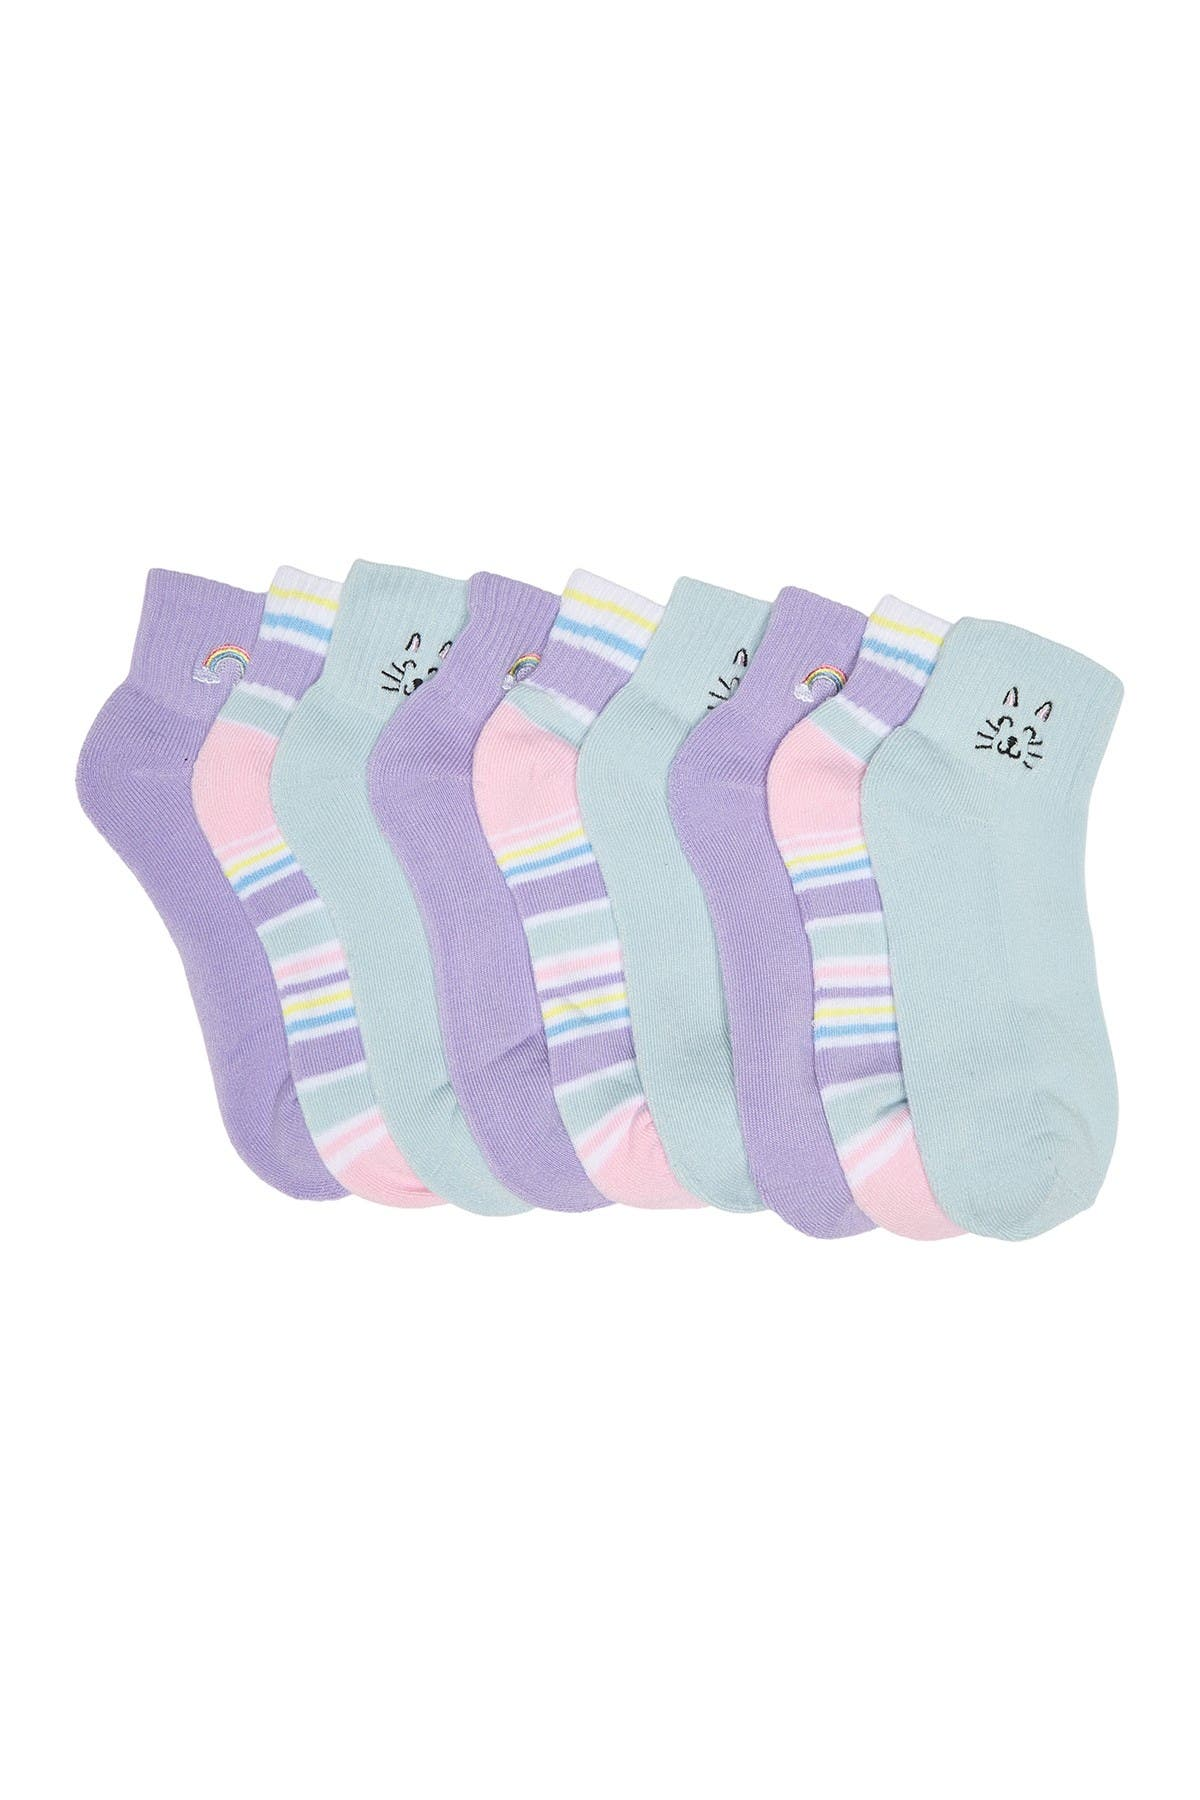 Image of Abound Embroidered Ankle Socks - Pack of 3